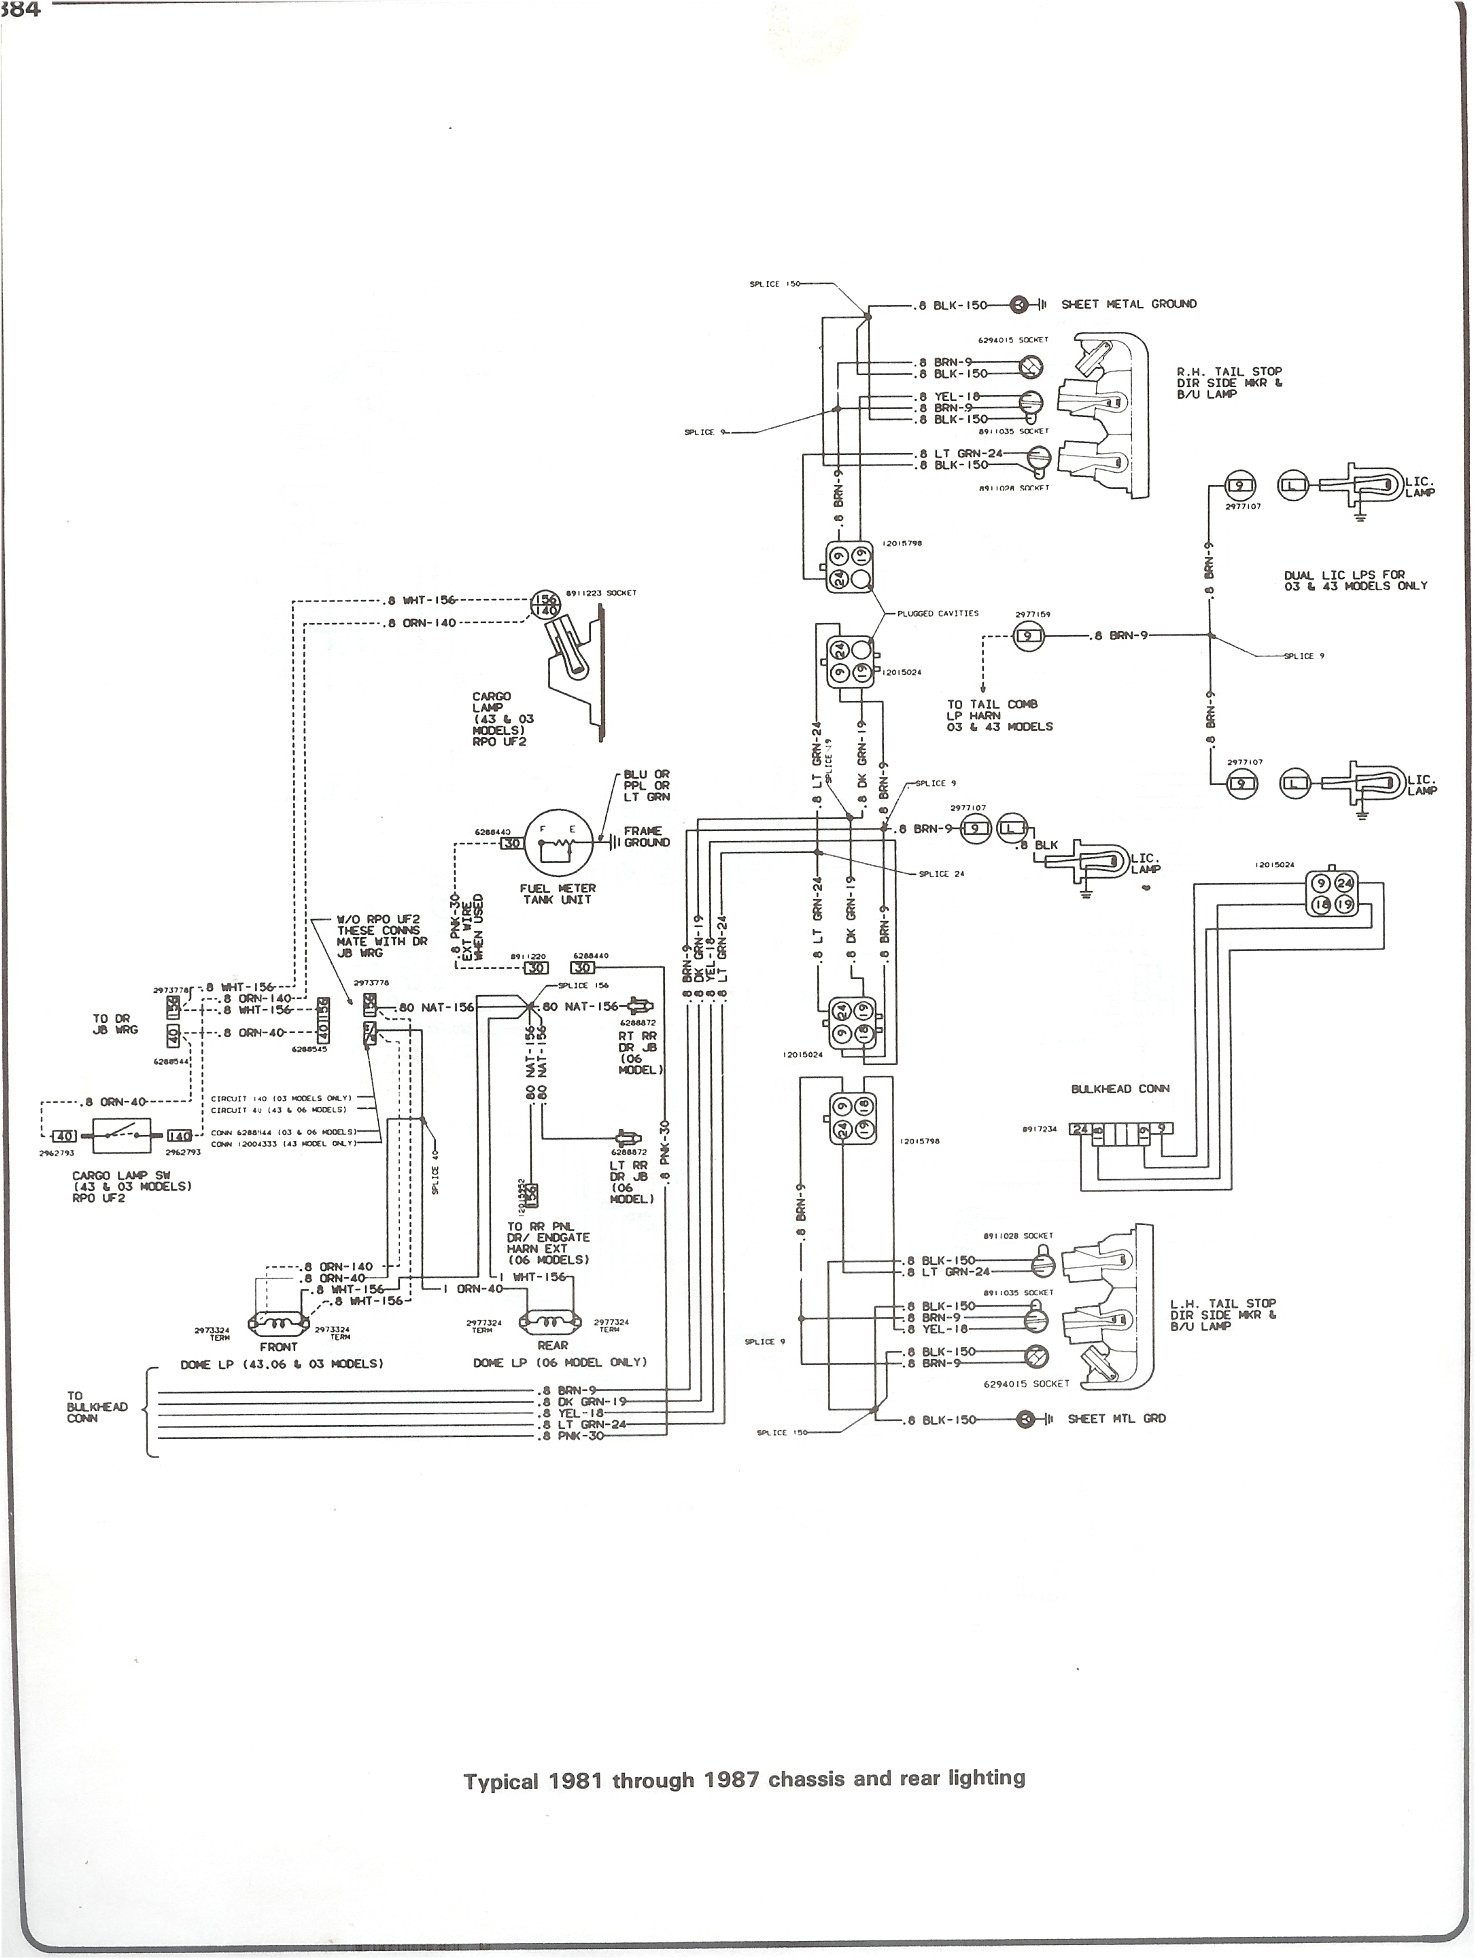 1981 Chevy Truck Fuse Box Diagram My Wiring Diagram